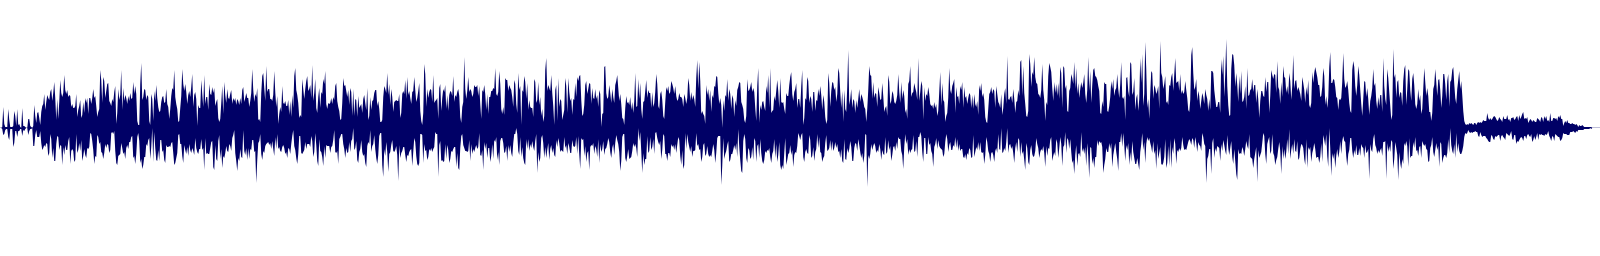 waveform of track #118605